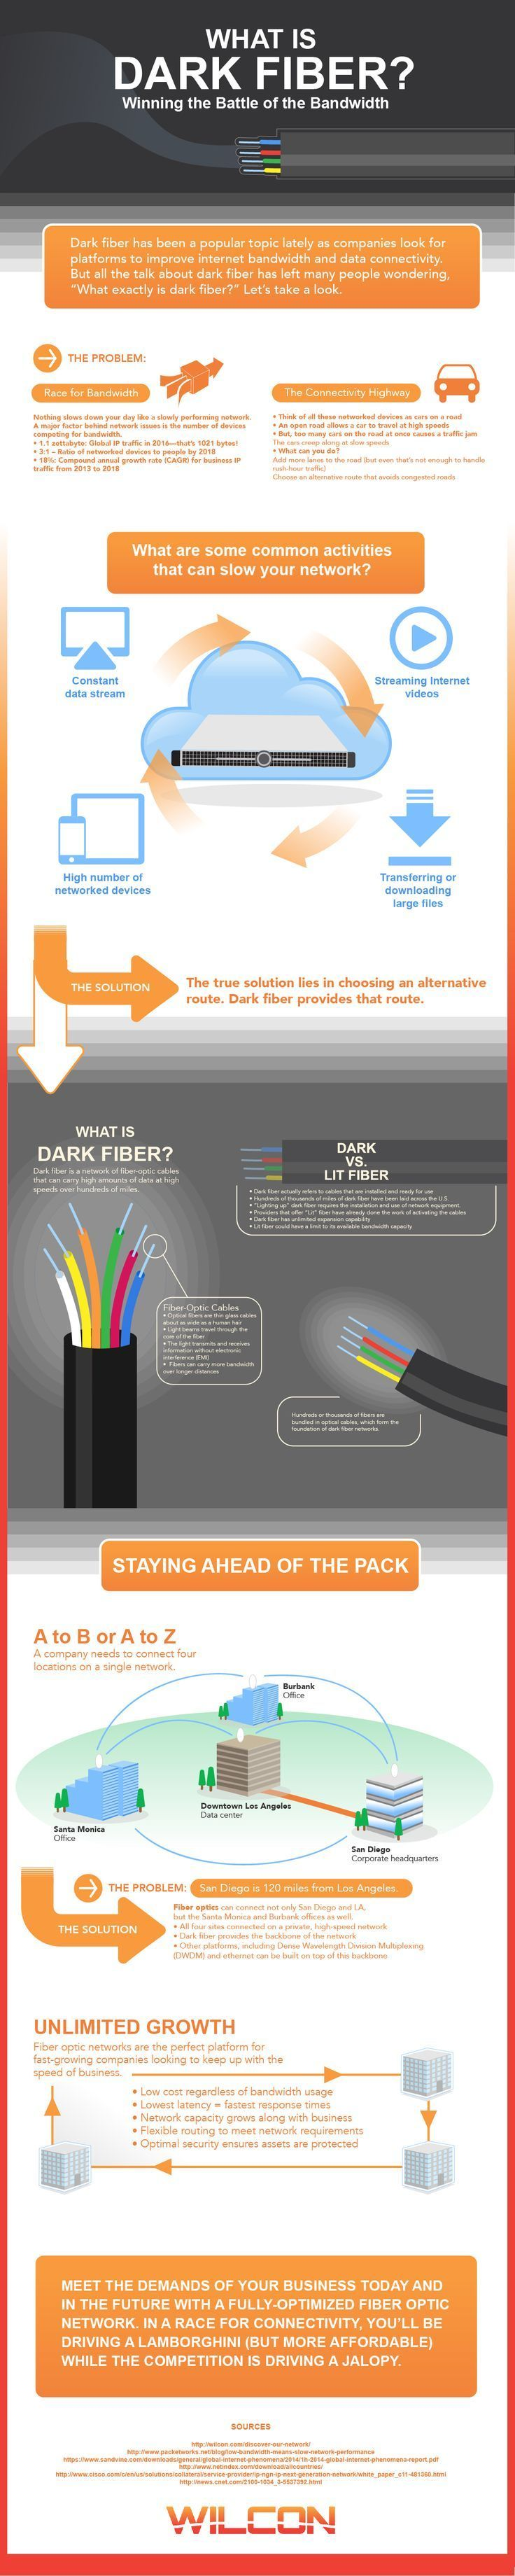 The latest technology to be developed for communication data over long distances is fiber optic cables. These highly advanced cables use beams of light to transfer information as quickly as possible. However, there has been a new development in fiber optics recently. Lit fiber has been the standard for many years, but dark fiber is replacing it.